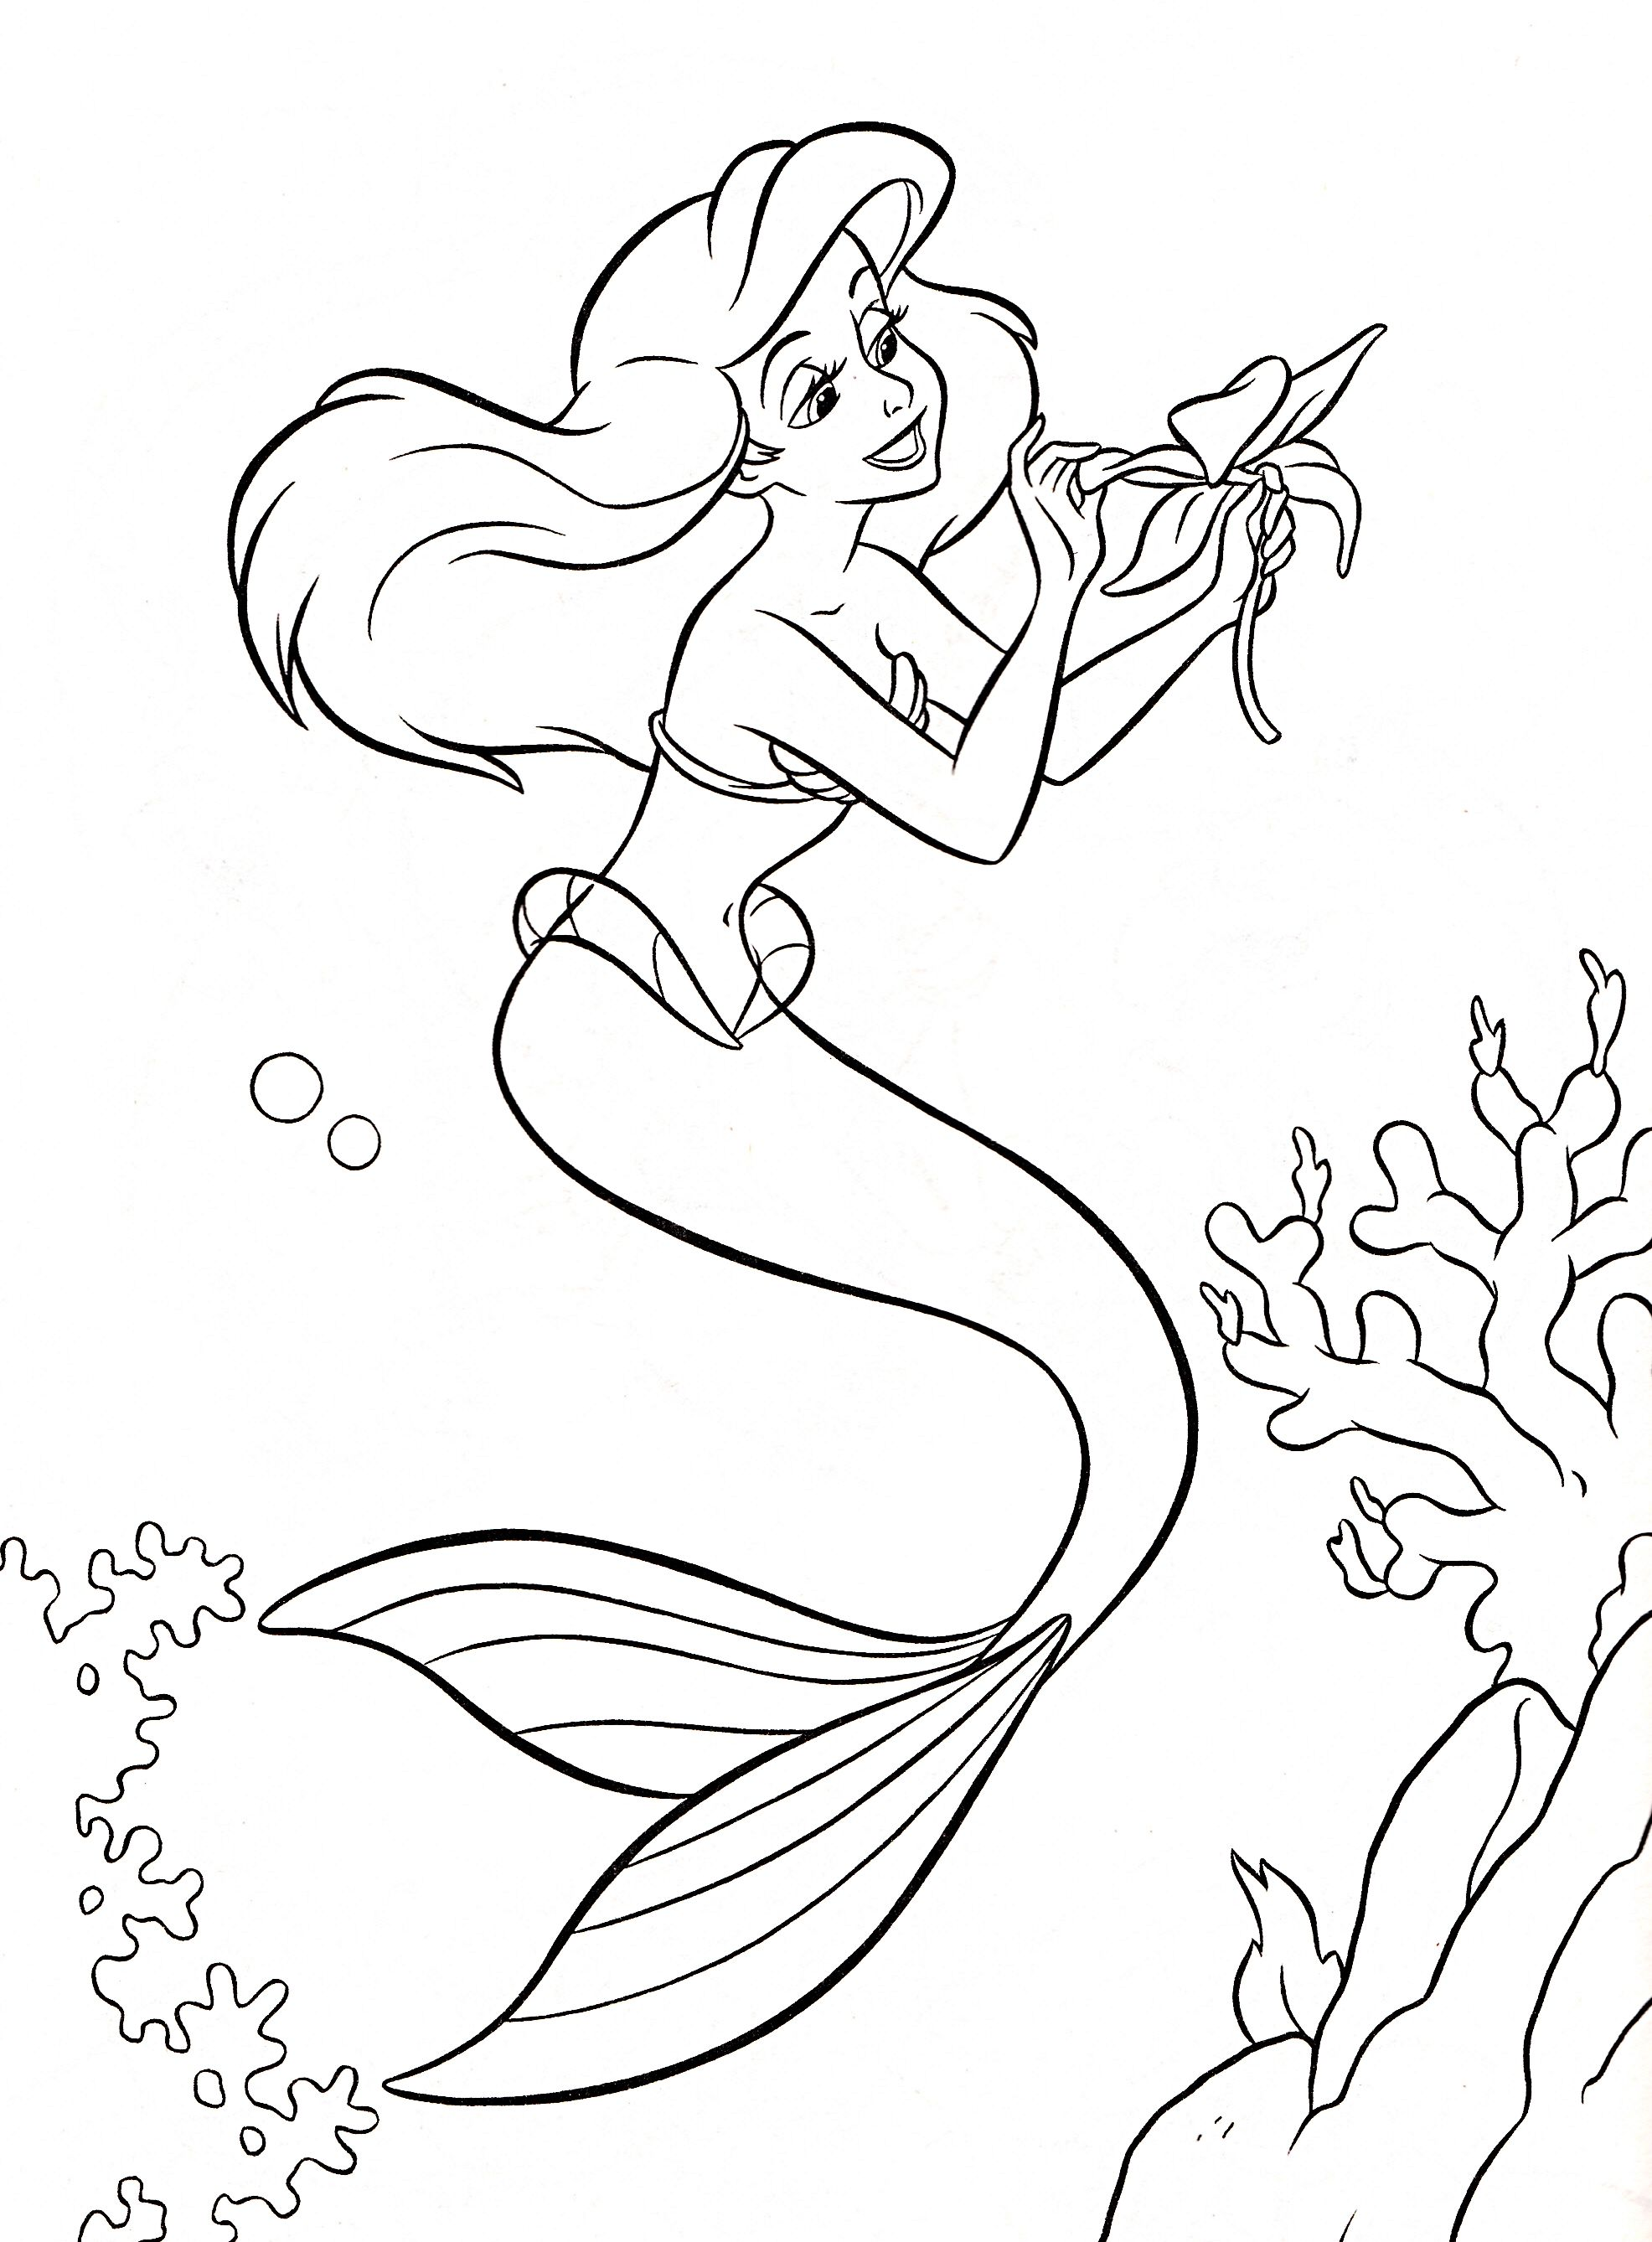 Disney princess coloring book for adults - Find This Pin And More On Coloring Book Walt Disney Coloring Pages Princess